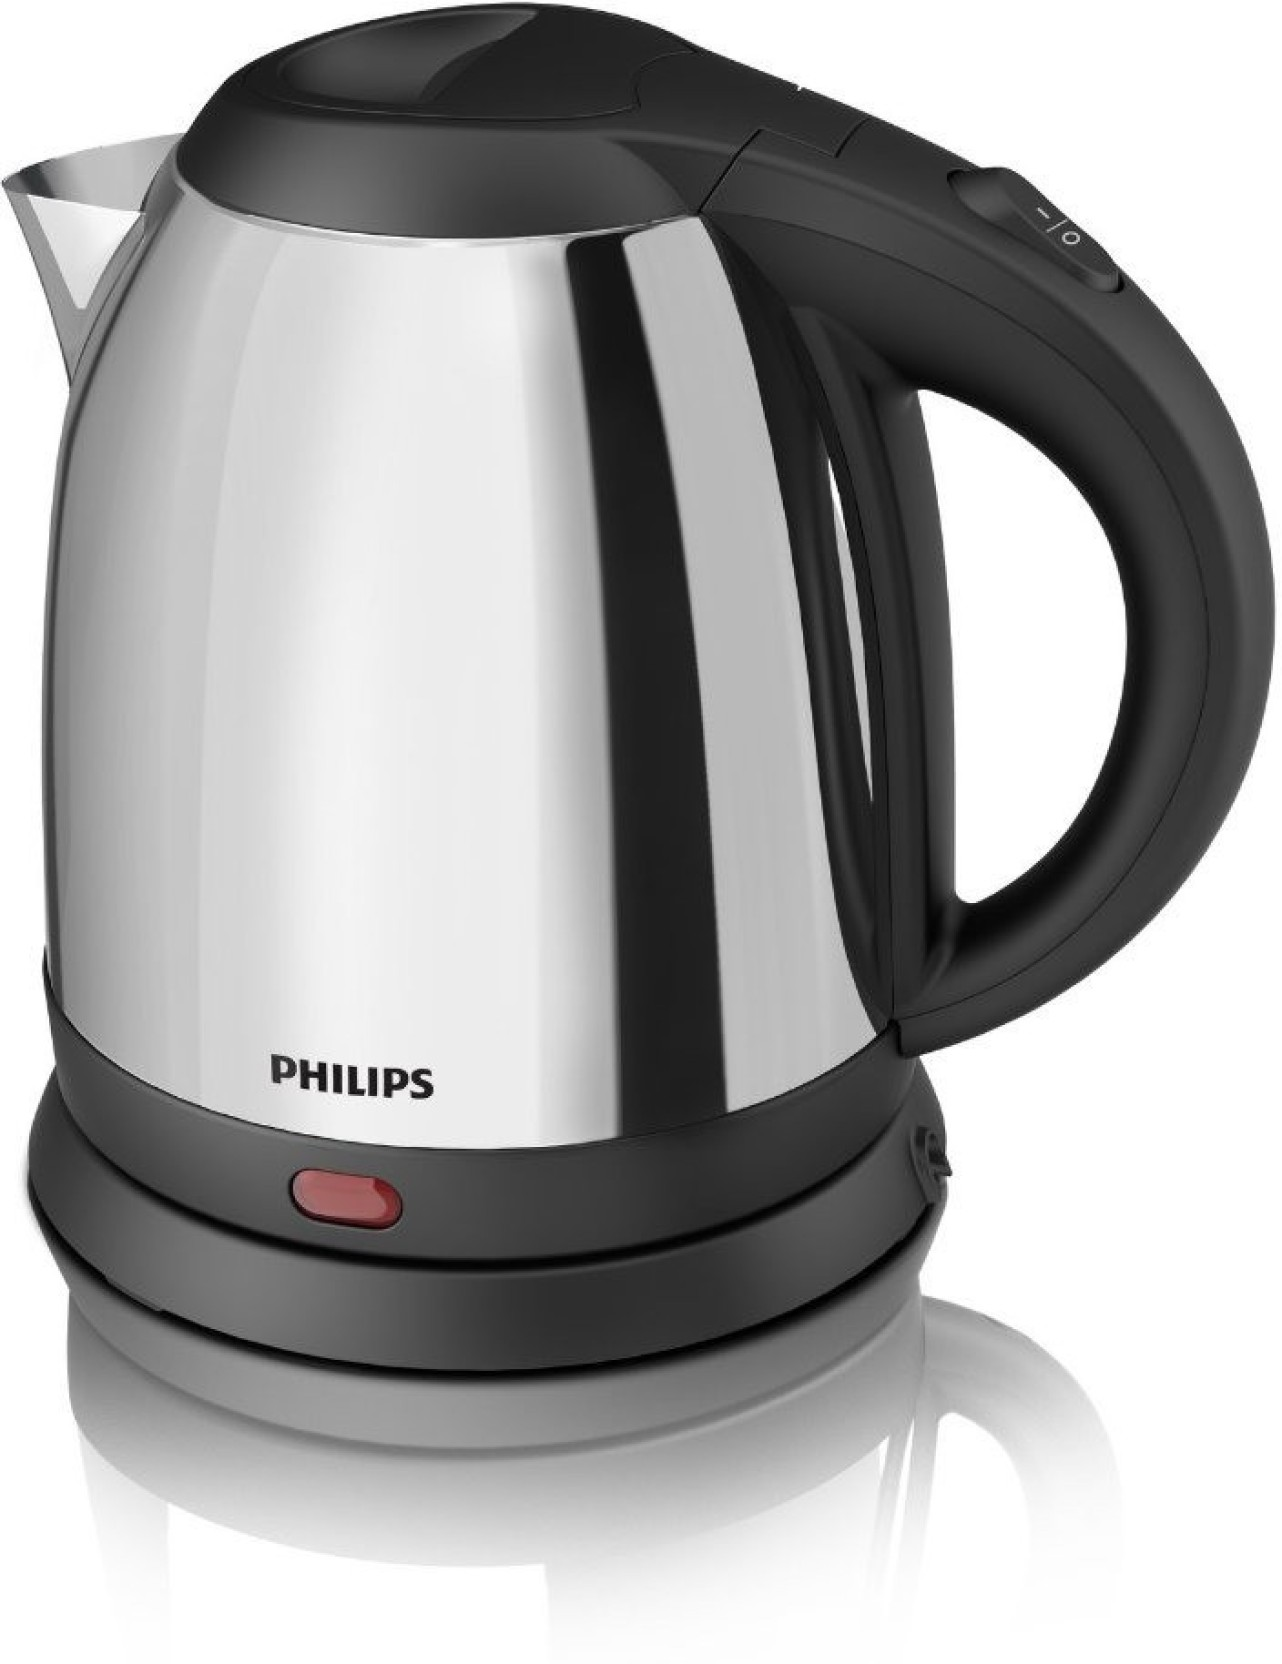 Philips Hd 9303 02 Electric Kettle Price In India Buy Philips Hd 9303 02 Electric Kettle